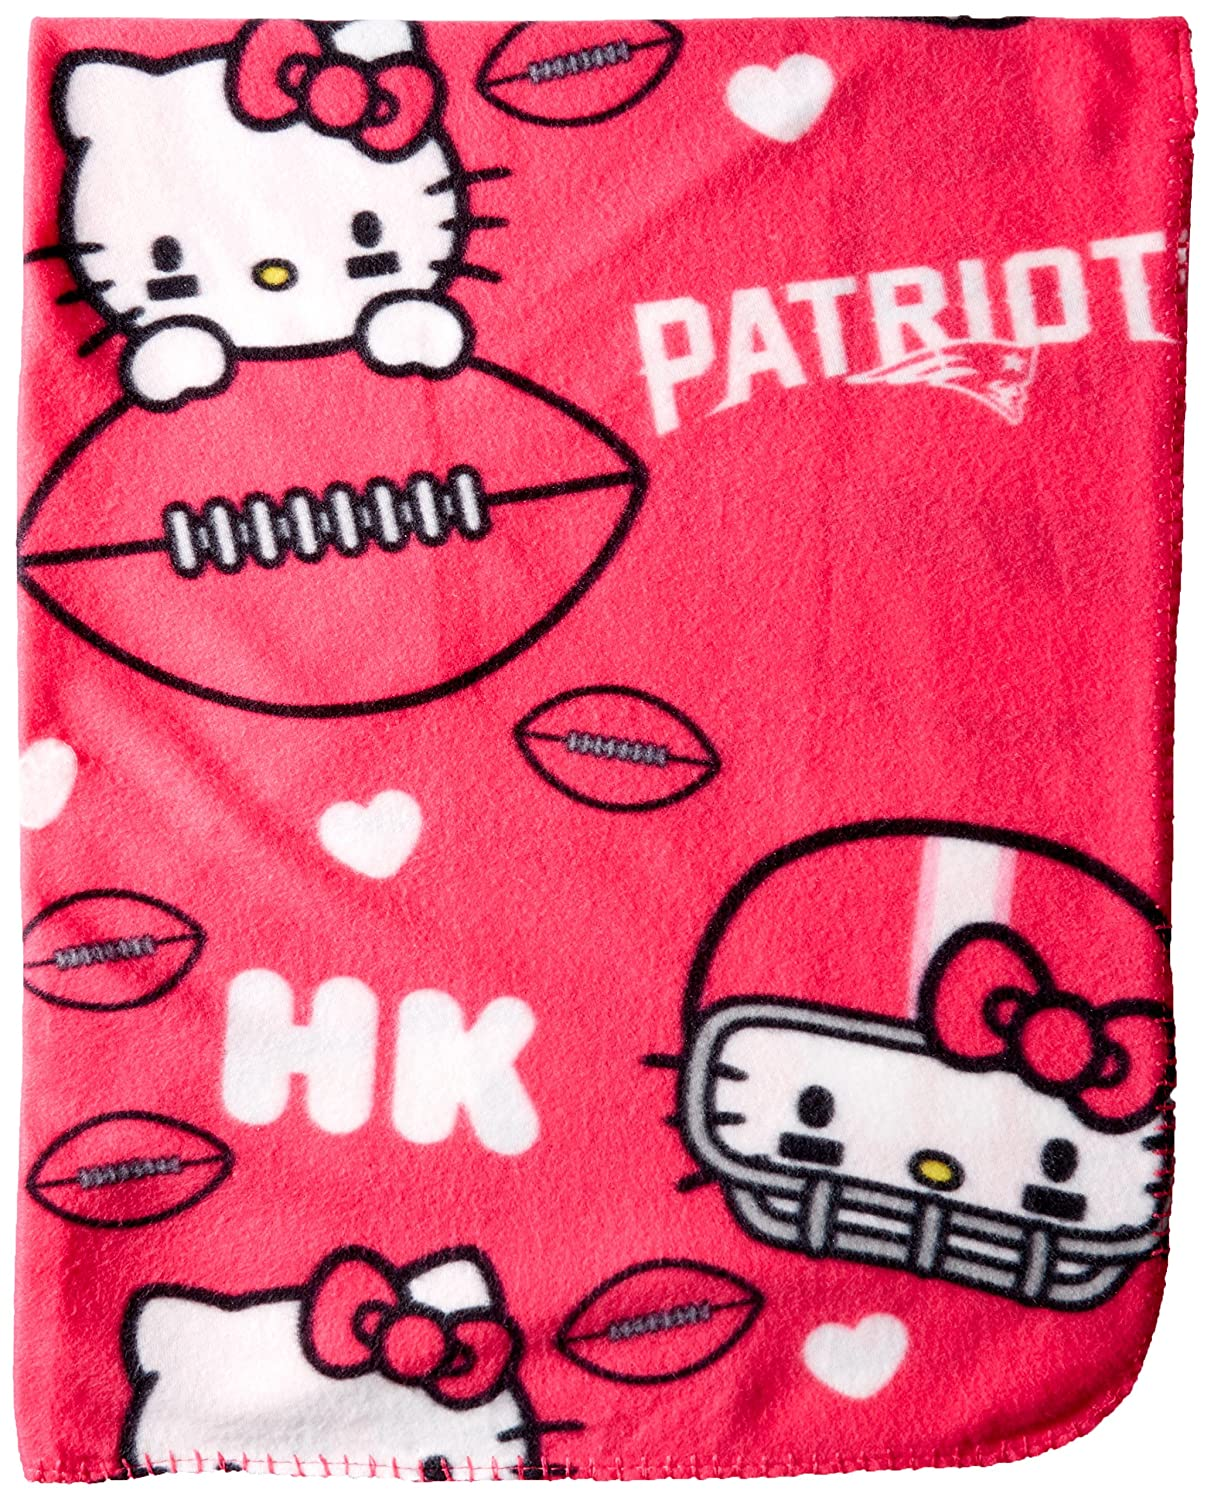 Pink Officially Licensed NFL Co Sanrios Hello Kitty Hugger and Fleece Throw Blanket Set 40 x 50